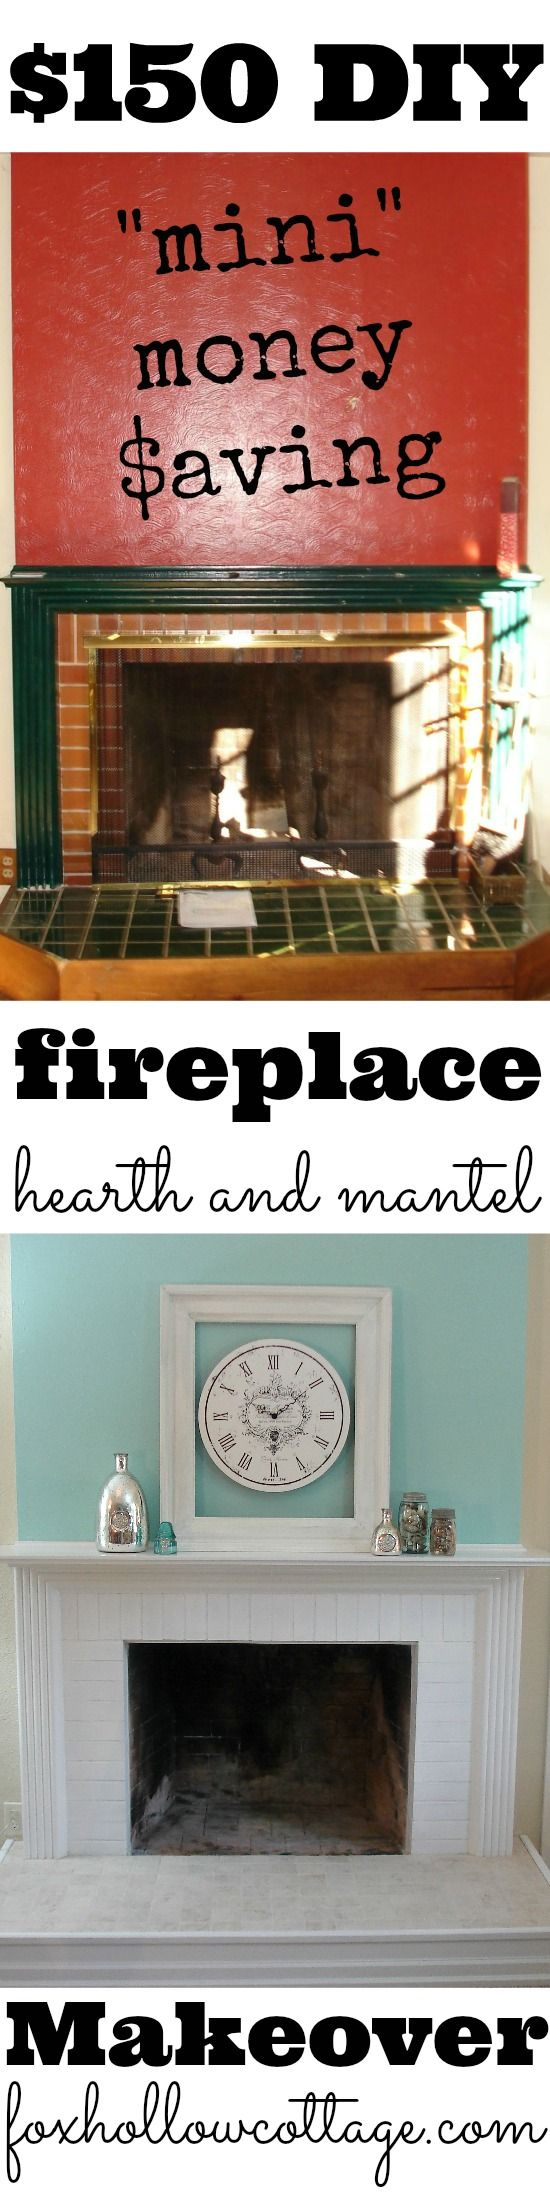 9 best step by step fireplace remodel images on pinterest Fireplace step